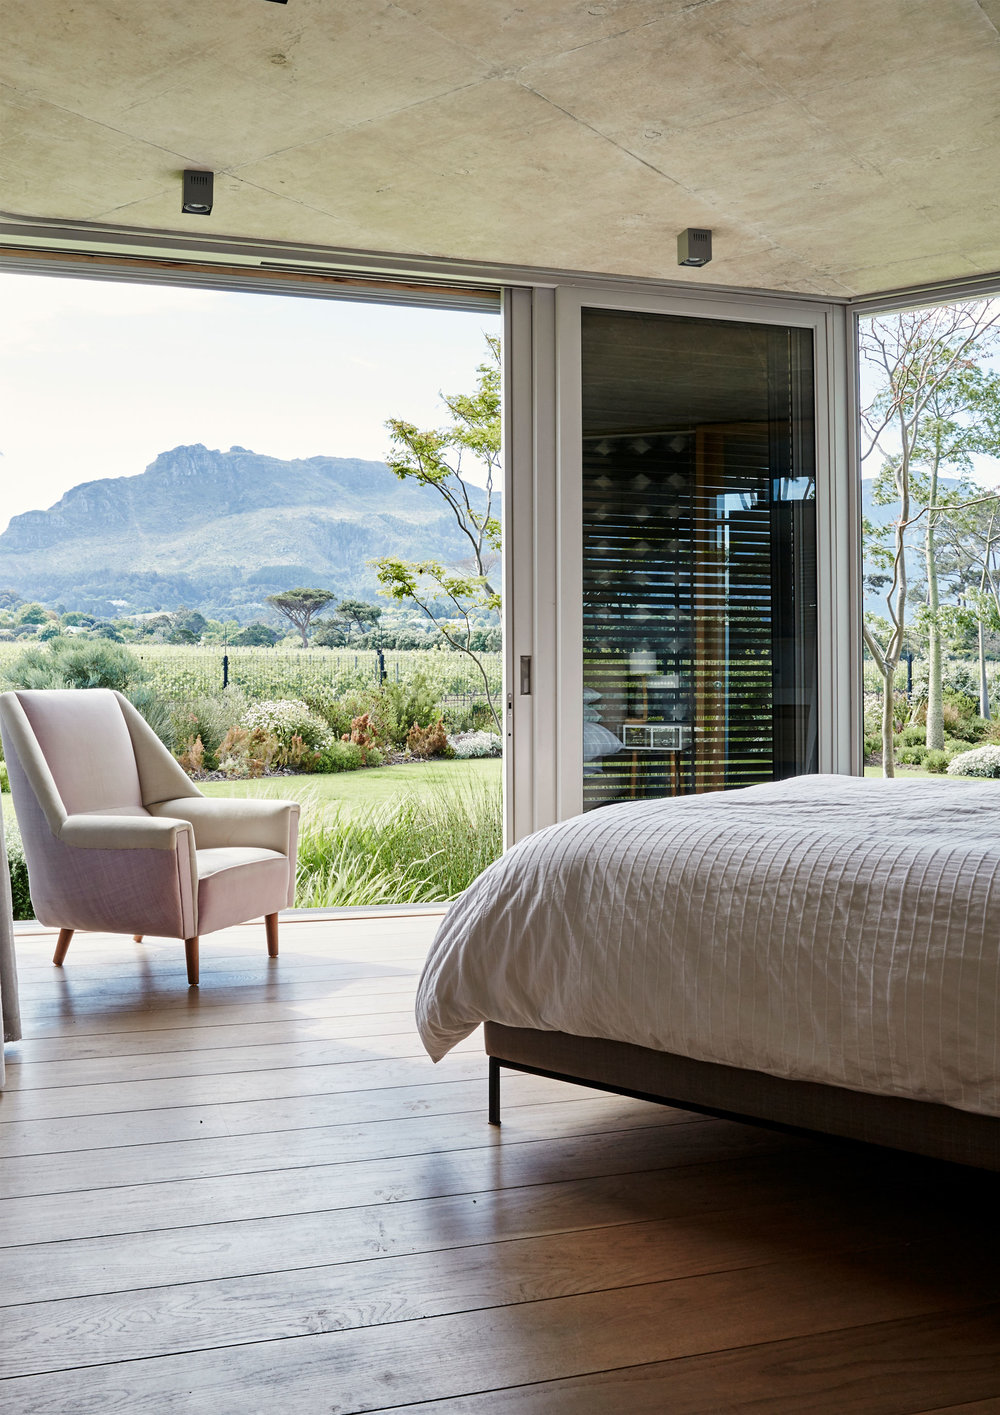 The master bedroom at the end of the bedroom wing has spectacular views of the garden‭, ‬over the vineyards and to the Table Mountain range beyond‭. ‬The angled‭, ‬stepped formation of the rooms makes it possible for them each to have a north‭- ‬and west-facing aspect‭. ‬While the floor-to-ceiling glass sliding doors enable the views‭, ‬the necessary privacy is created with sliding cedar screens‭. ‬There are no ceilings in the bedrooms‭ ‬‮$‬ع‭ ‬they feature raw off-shutter concrete‭. ‬The anthropomorphic Sitting Lamp is by Graeme Bettles‭. ‬